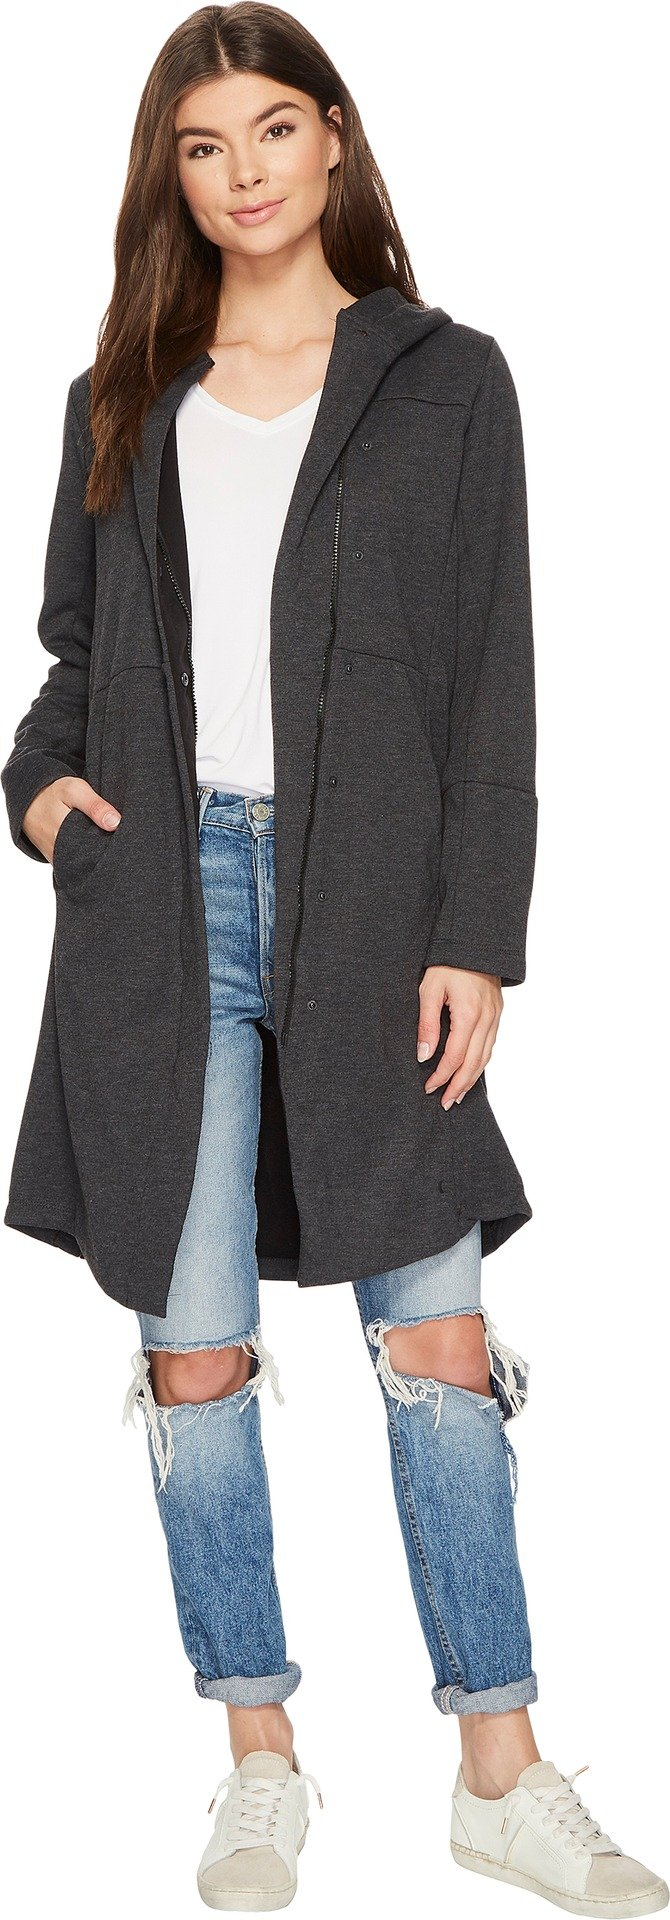 Hurley Women's Therma Winchester Trench Coat Black Heather X-Small